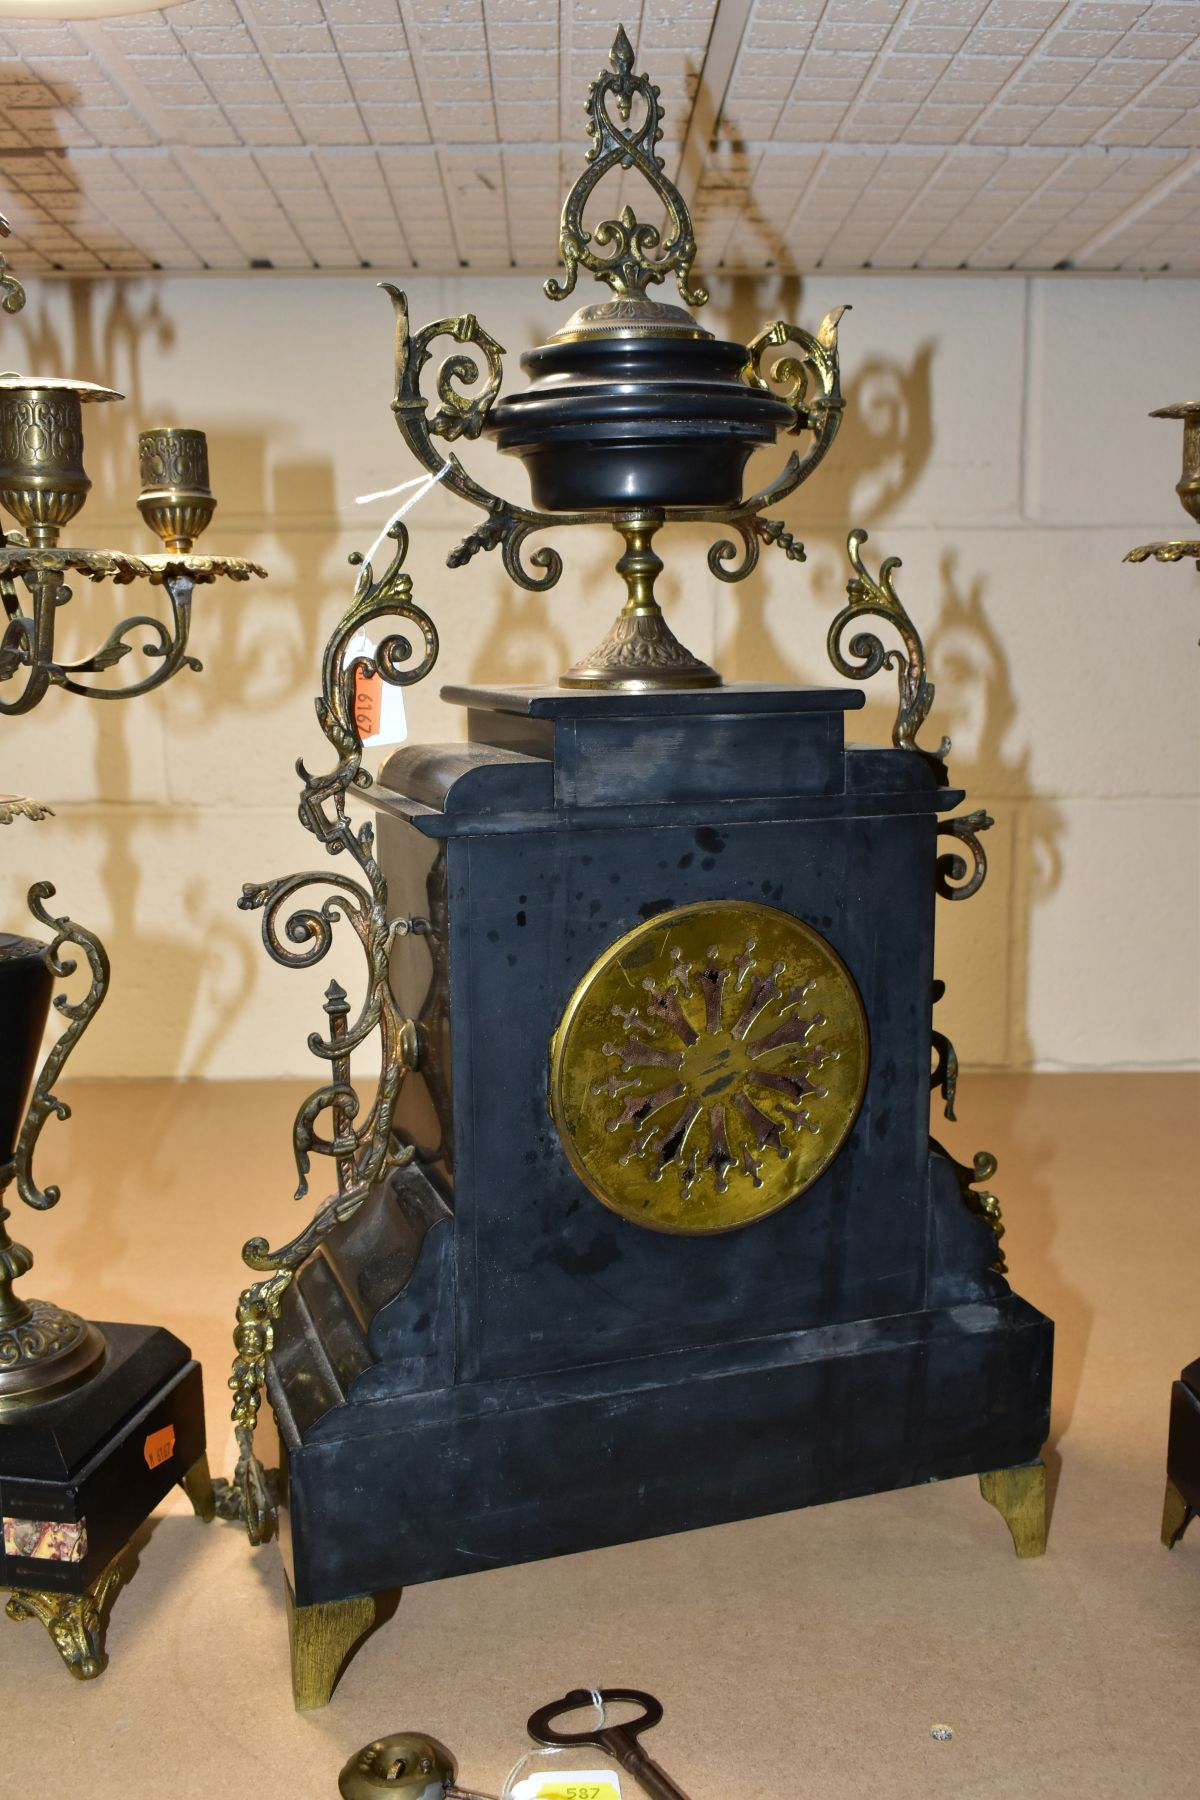 A LATE 19TH CENTURY BLACK SLATE, MARBLE AND GILT METAL CLOCK GARNITURE, the clock with urn shaped - Image 11 of 13